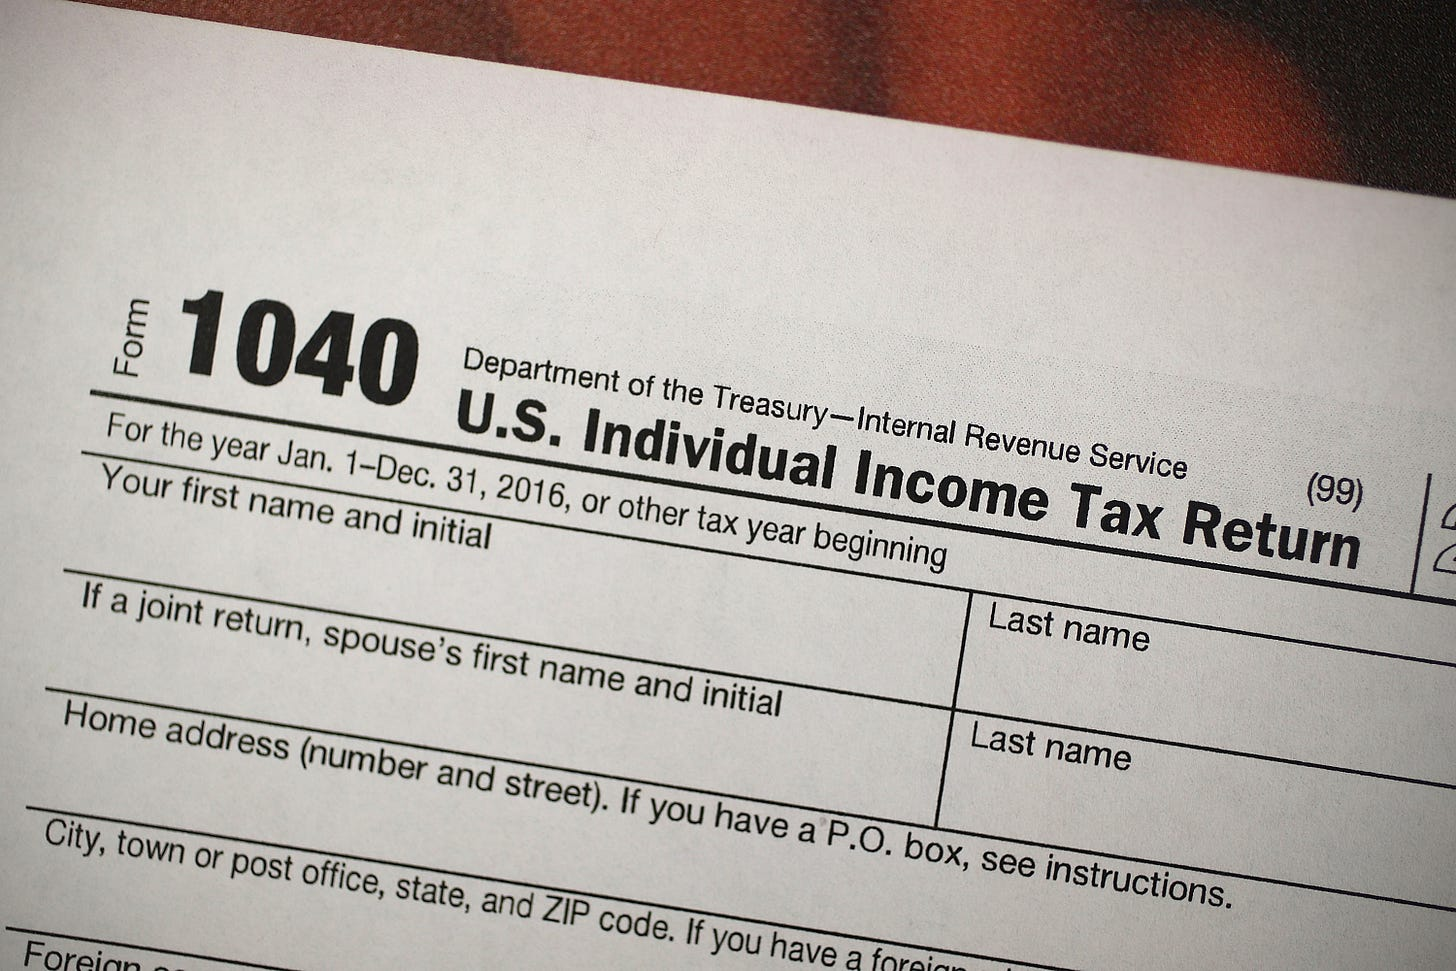 A copy of a IRS 1040 tax form is seen at an H&R Block office on the day President Donald Trump signed the Republican tax cut bill in Washington, DC on December 22, 2017 in Miami, Florida